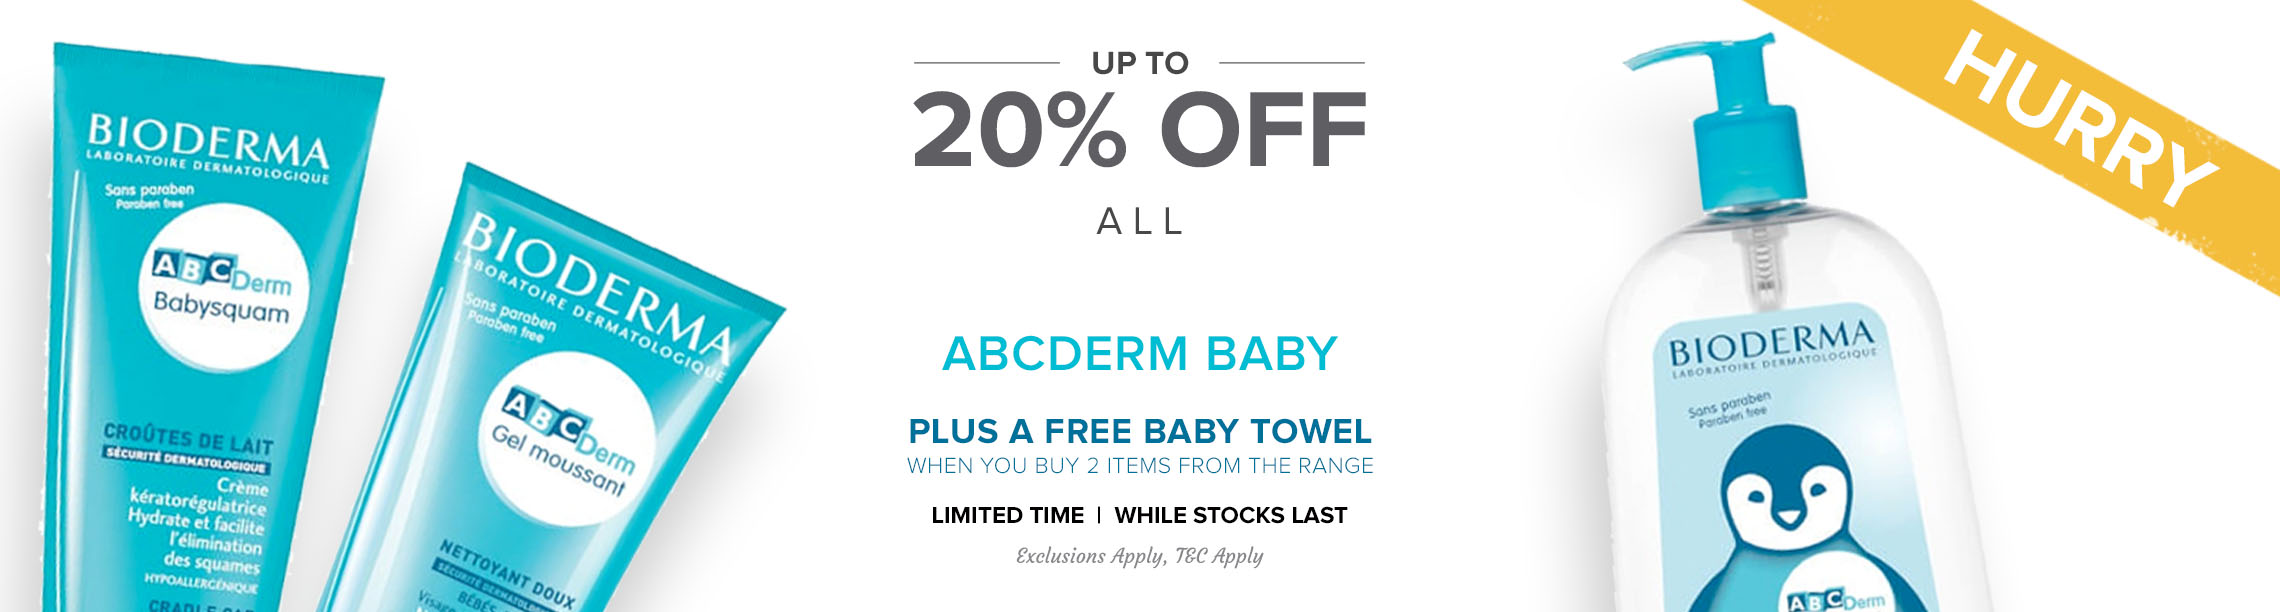 Up To 20% Off Bioderma